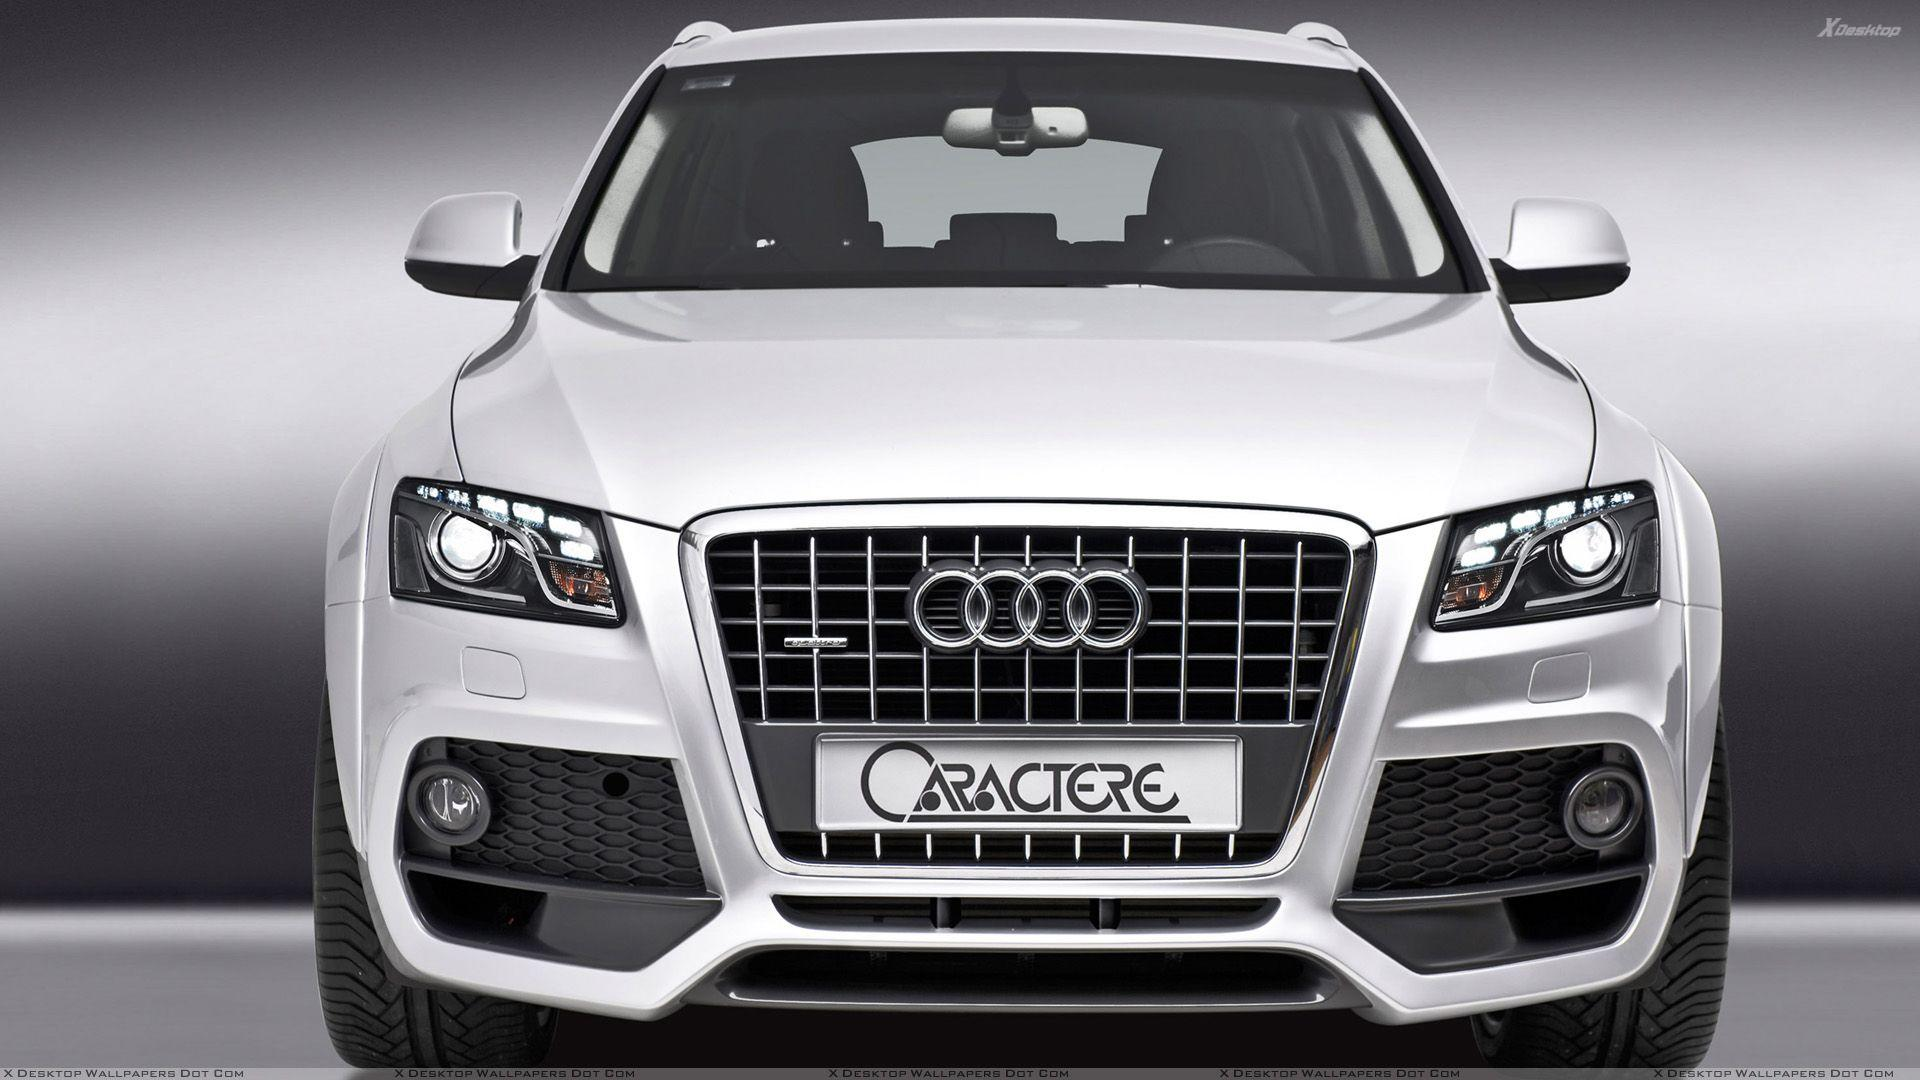 Audi Q5 Wallpapers, Photos & Image in HD